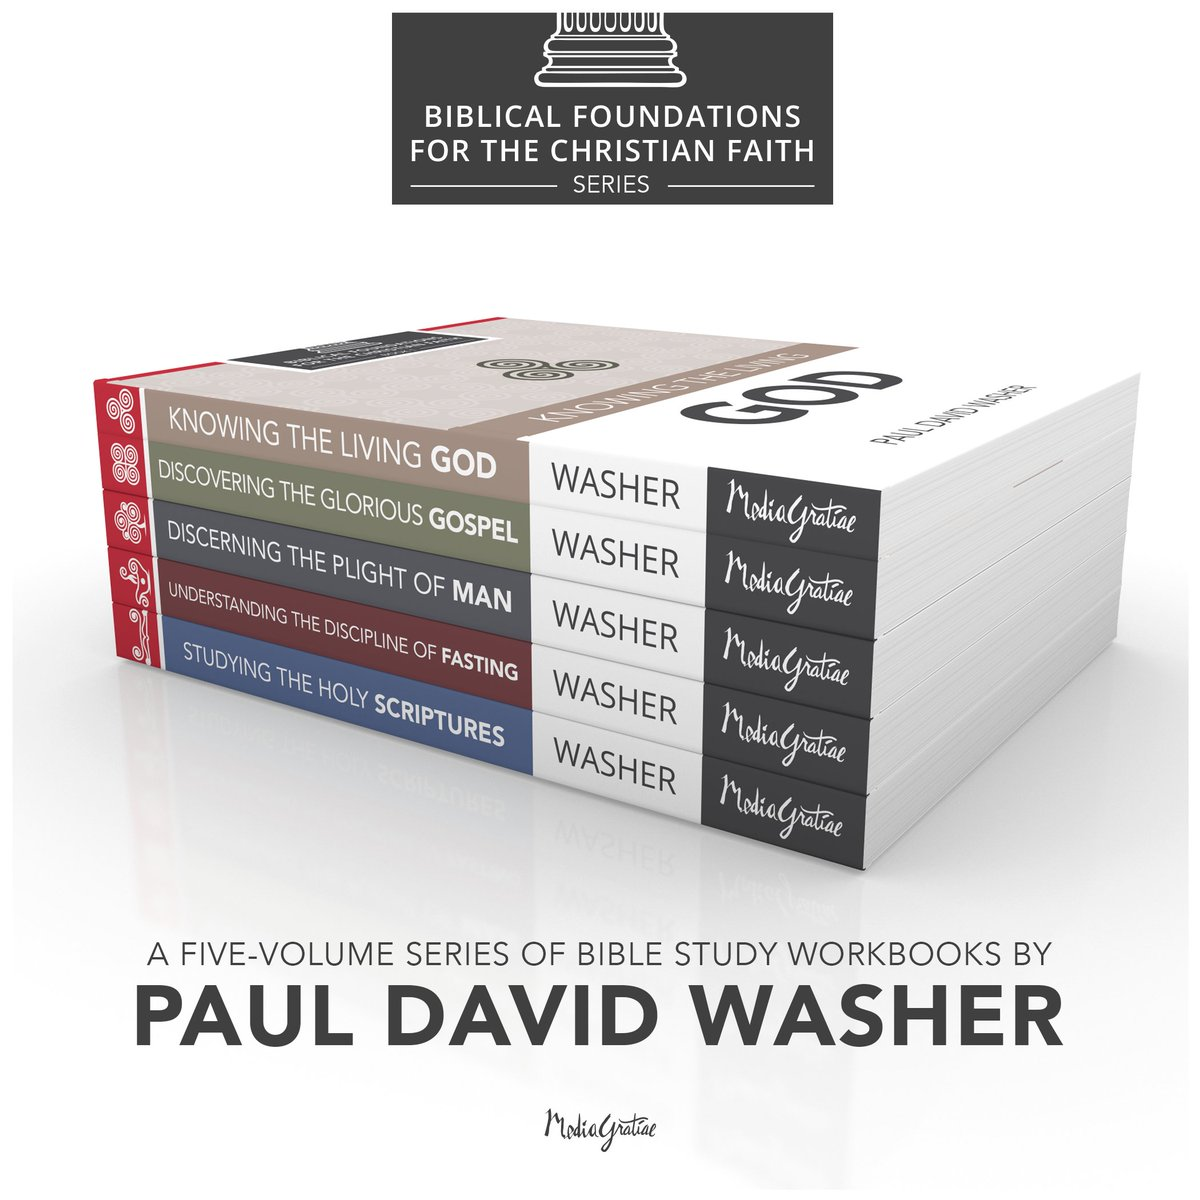 "Available now: ""Knowing the Living God"" by Paul Washer (@paulwasher), through @MediaGratiae: https://t.co/4qeVLibWQF https://t.co/b7OffYMu8V"